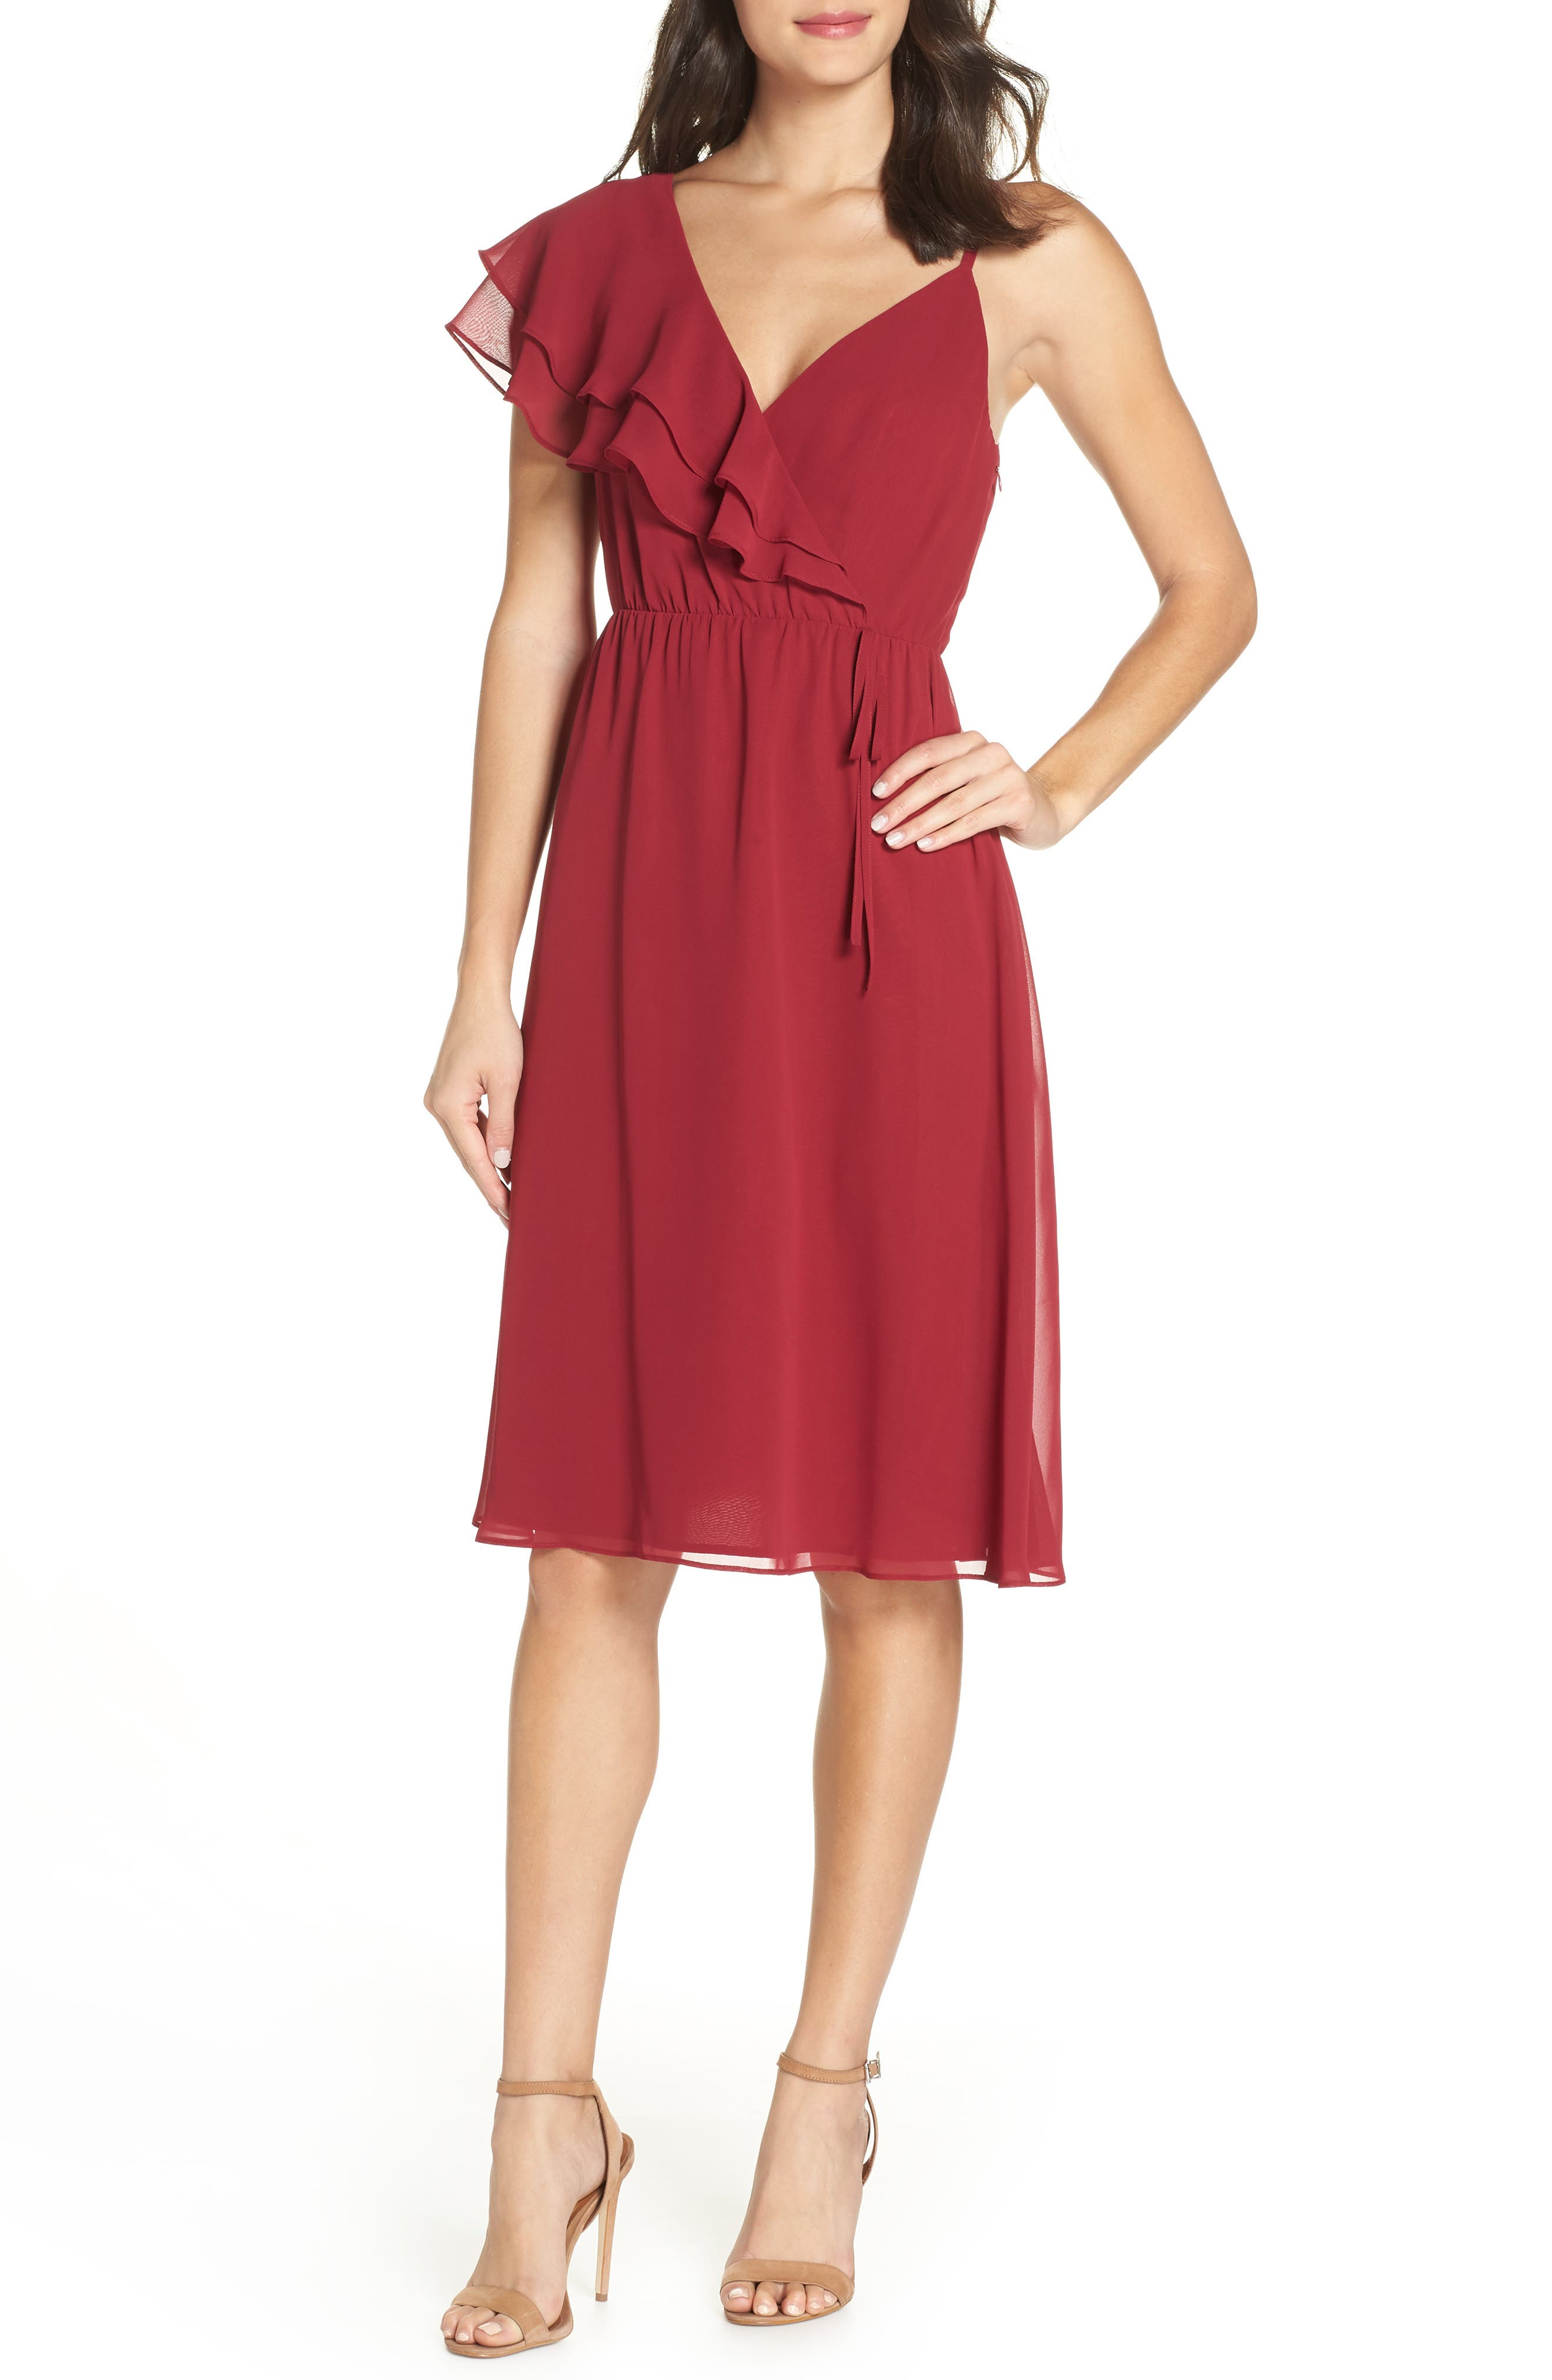 ALI & JAY Cloud 9 A-Line Dress in Cranberry